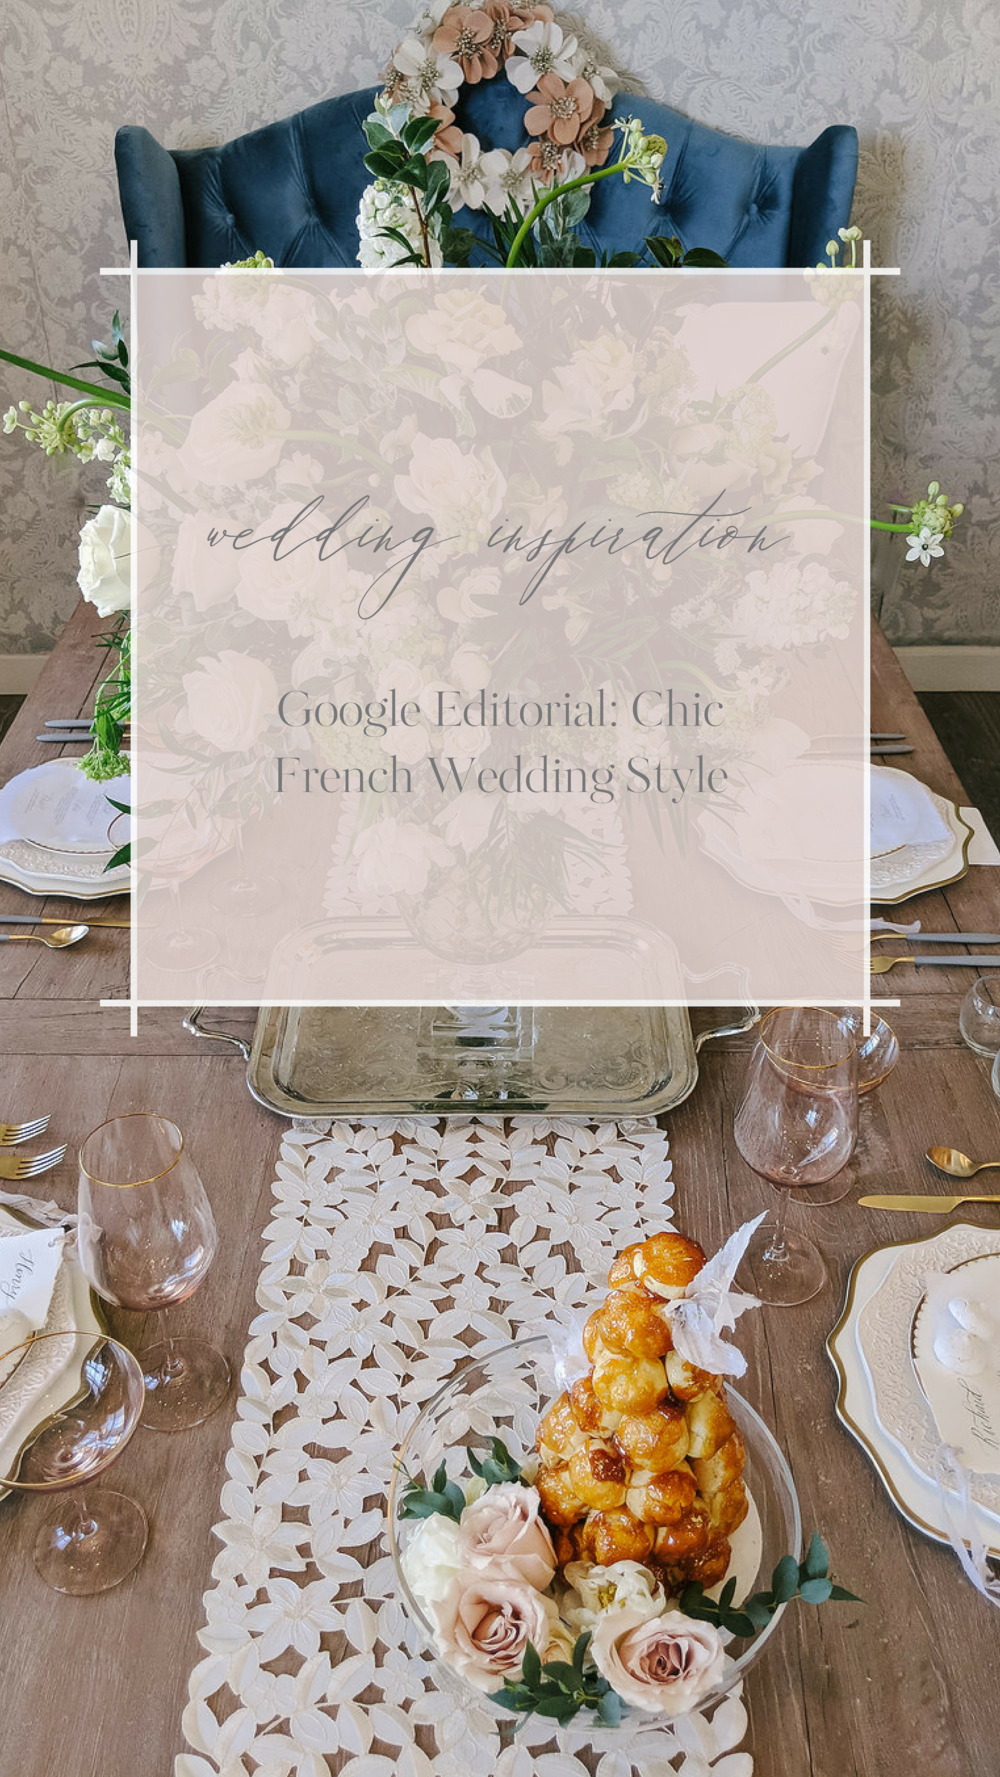 Google Editorial_ Chic French Wedding Style.png